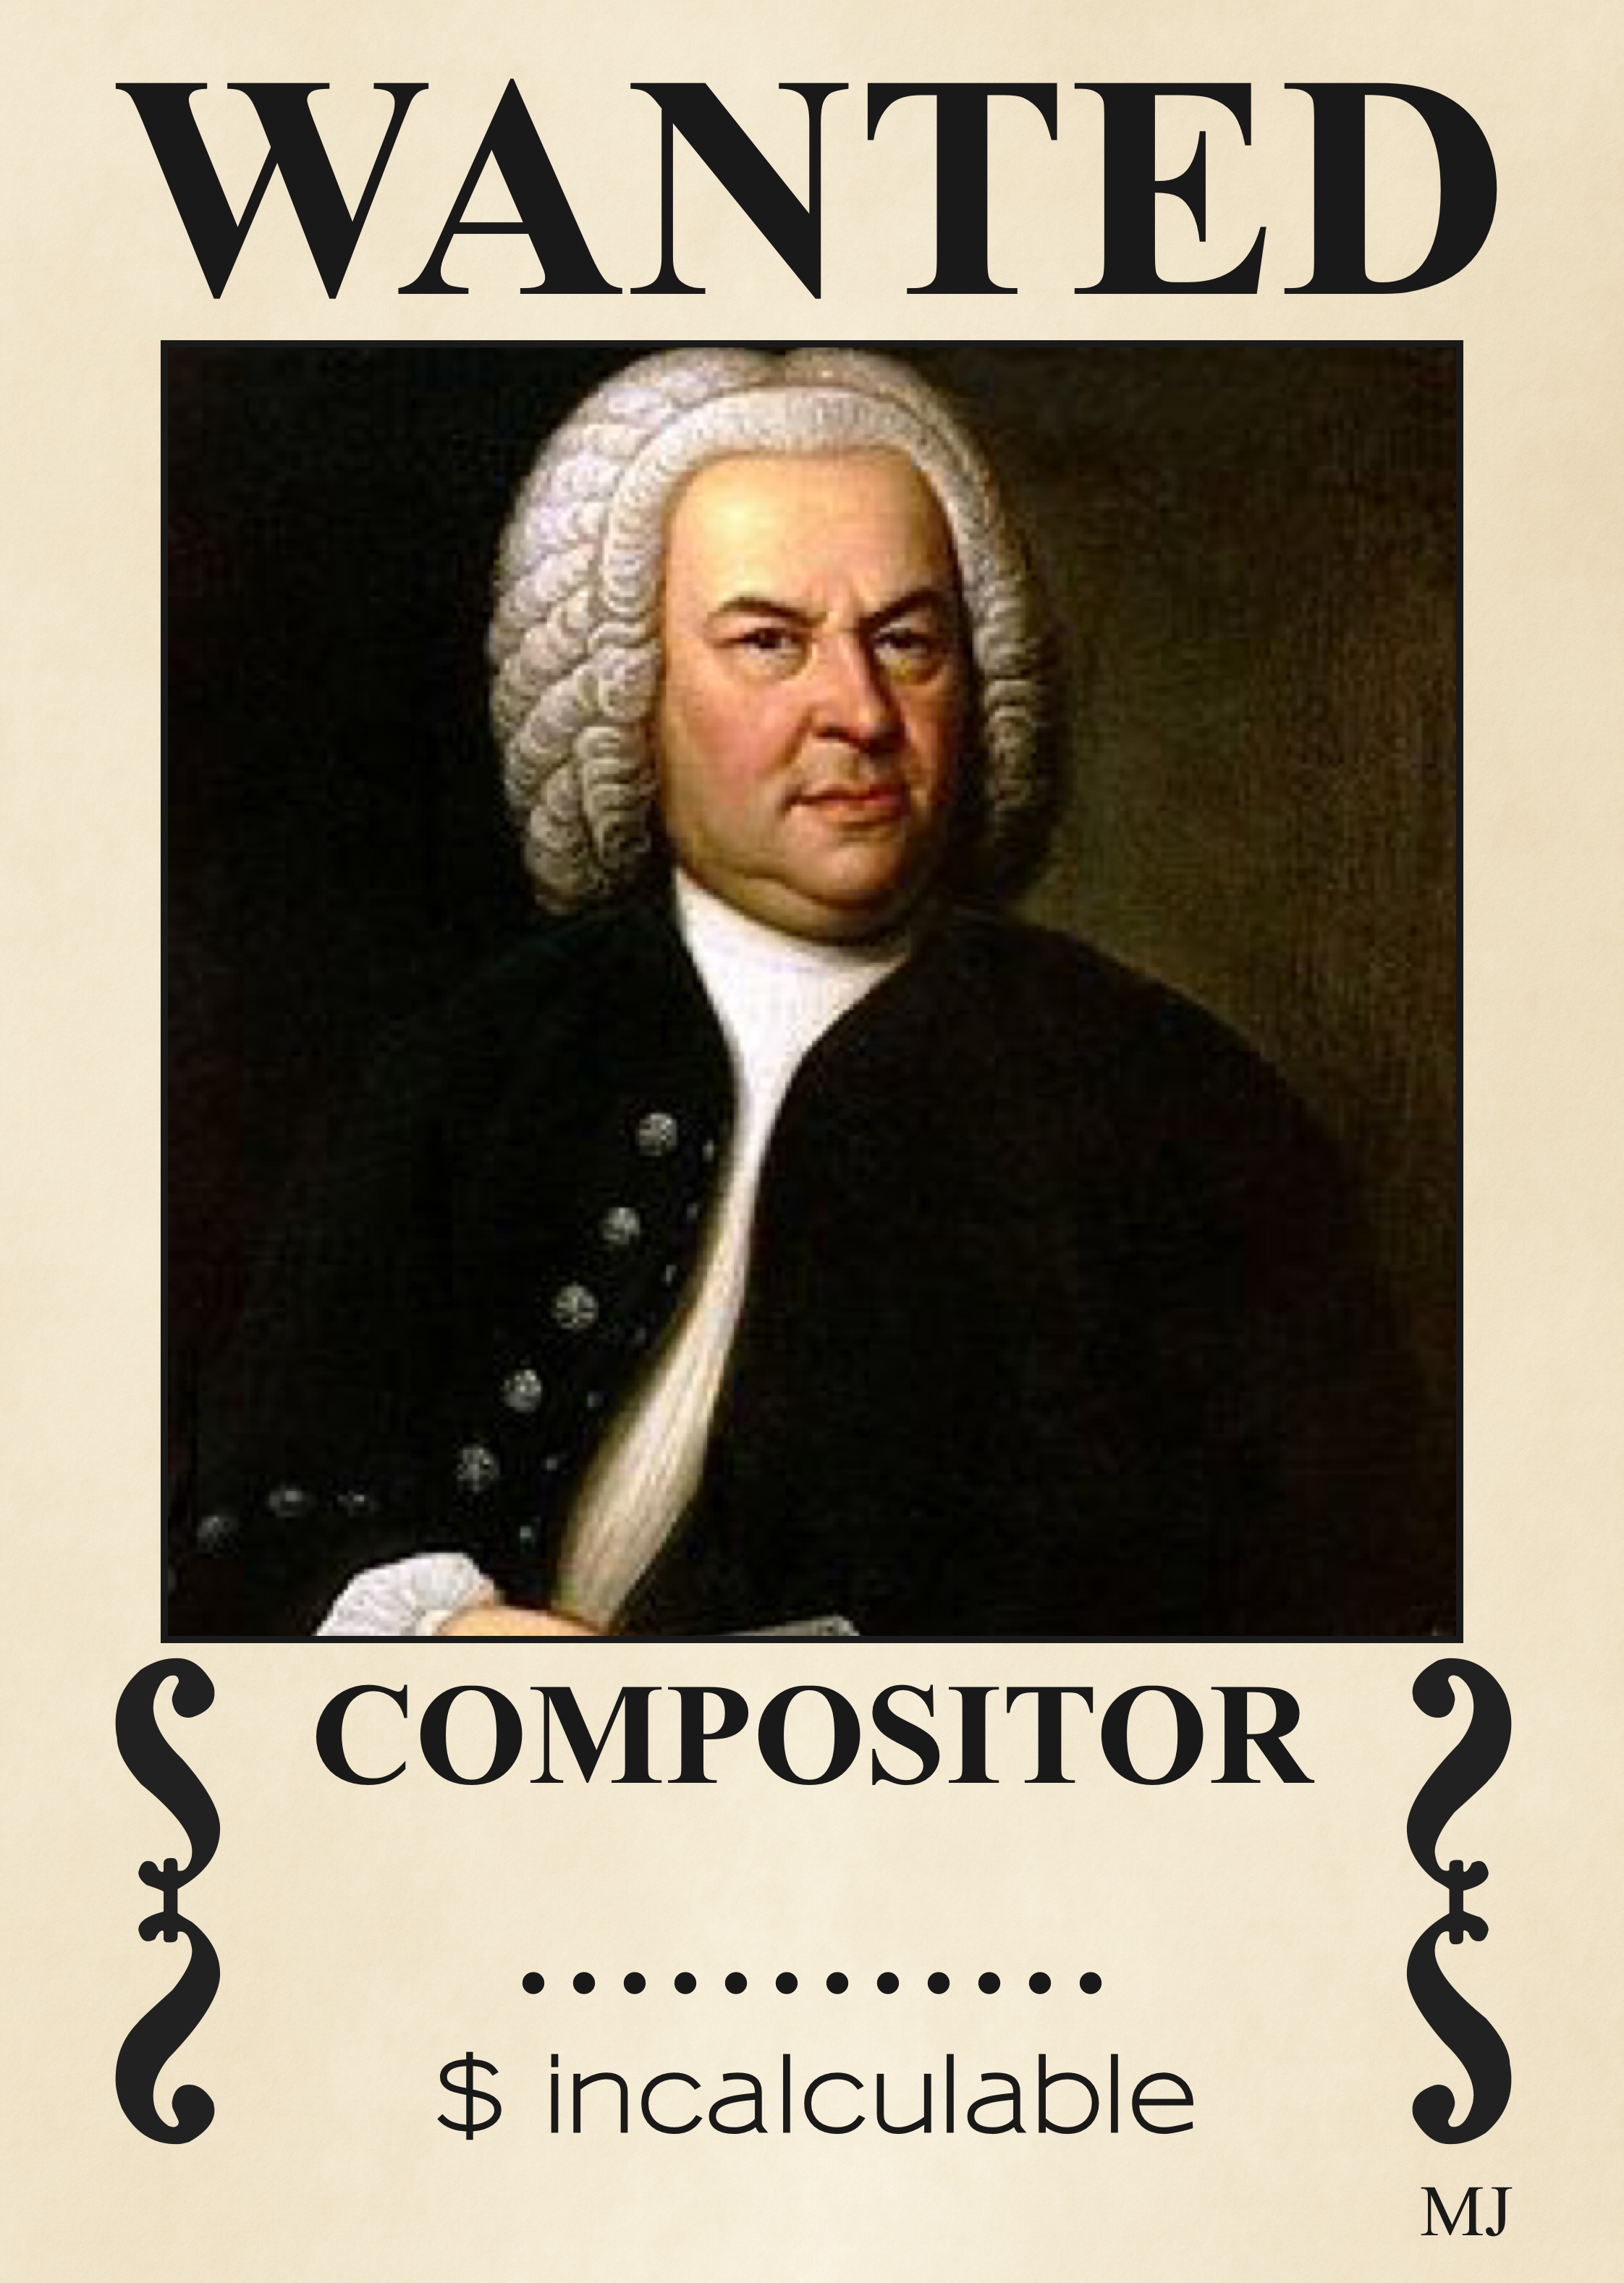 compositor02